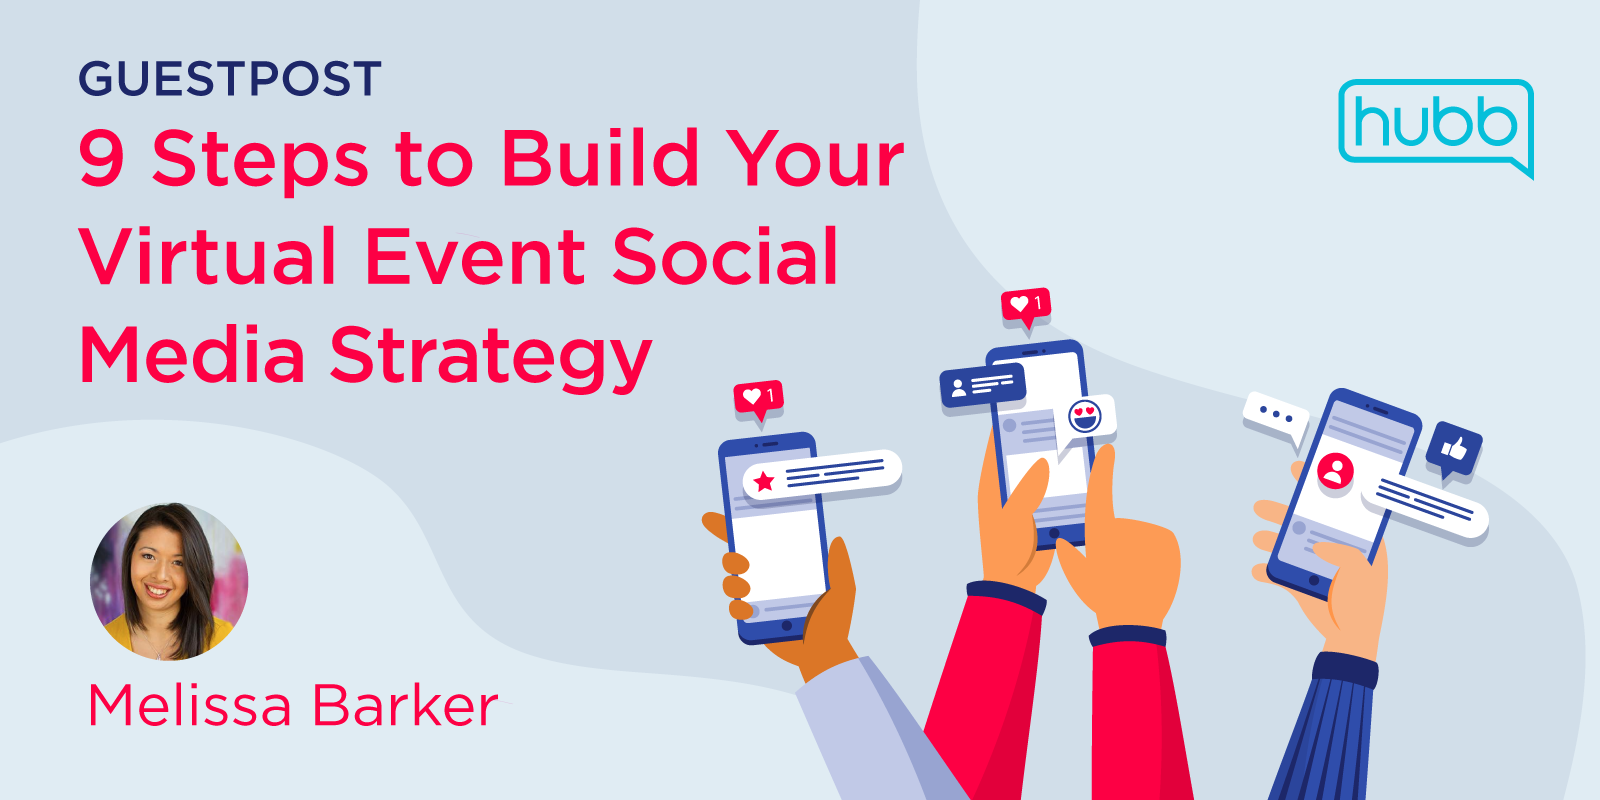 9 Steps to Build Your Virtual Event Social Media Strategy